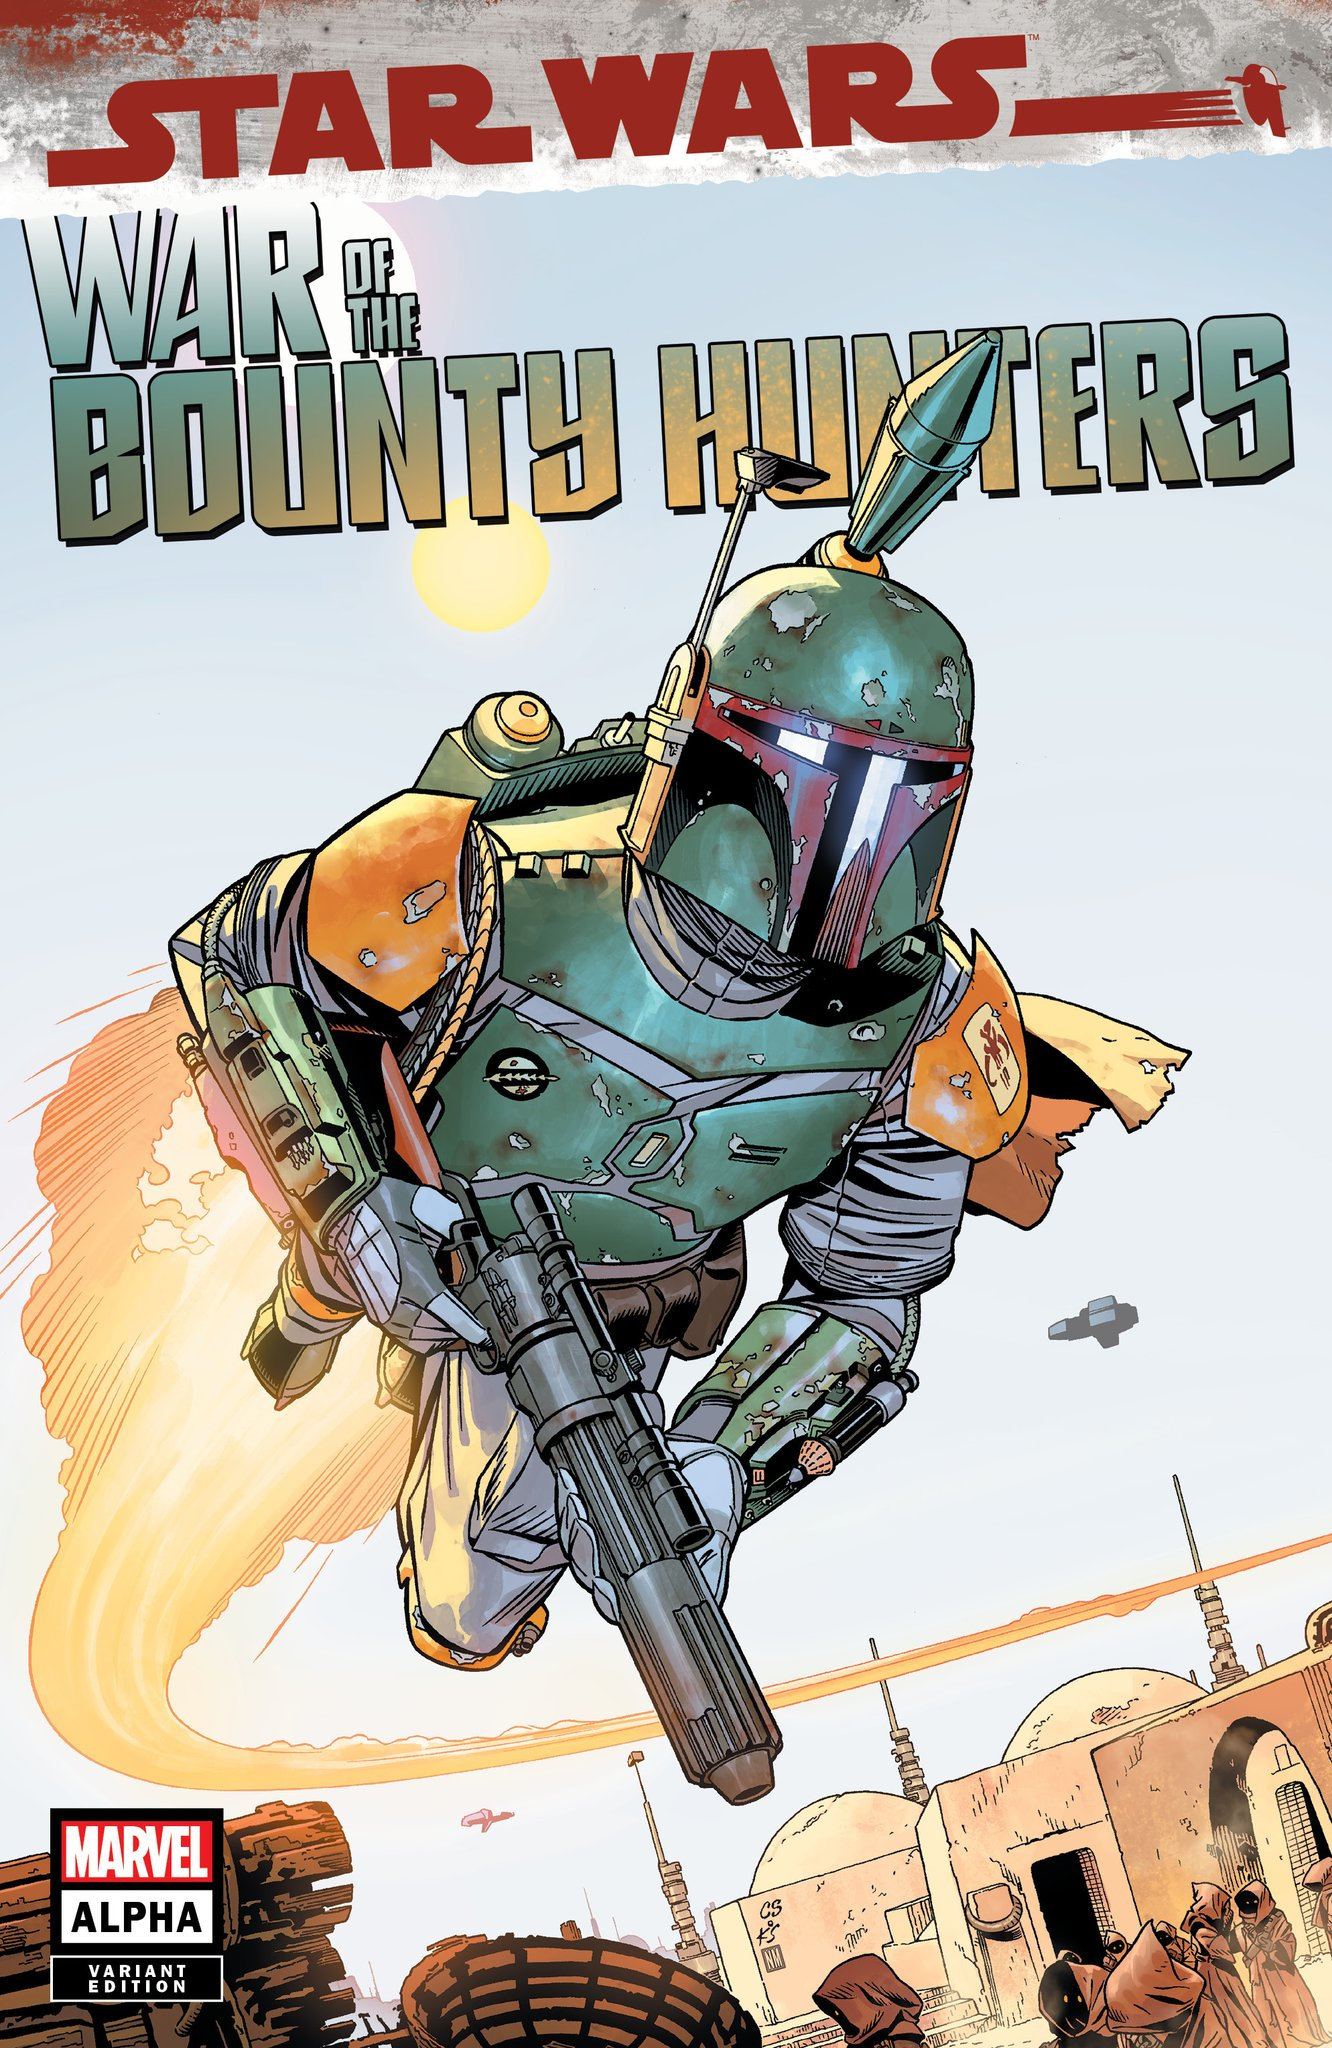 Star Wars: War of the Bounty Hunters Alpha - Big Time Variant